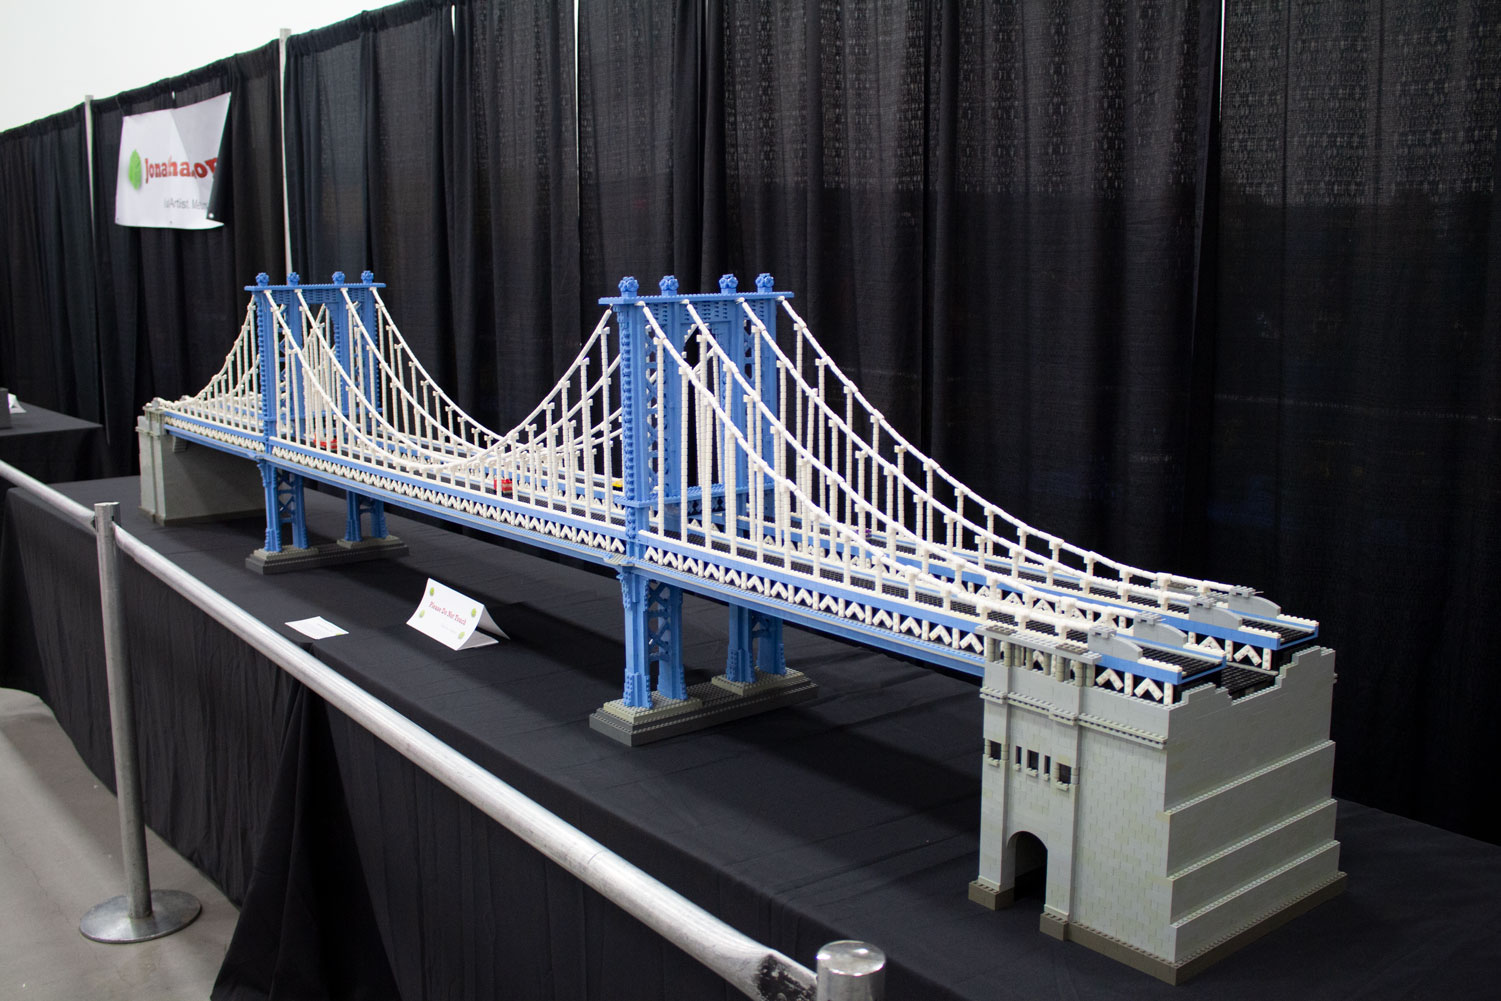 %22Manhattan+Bridge+%282011%29%22+by+Jonathan+Lopes+is+12+feet+long+with+a+total+of+16%2C500+Lego+bricks.